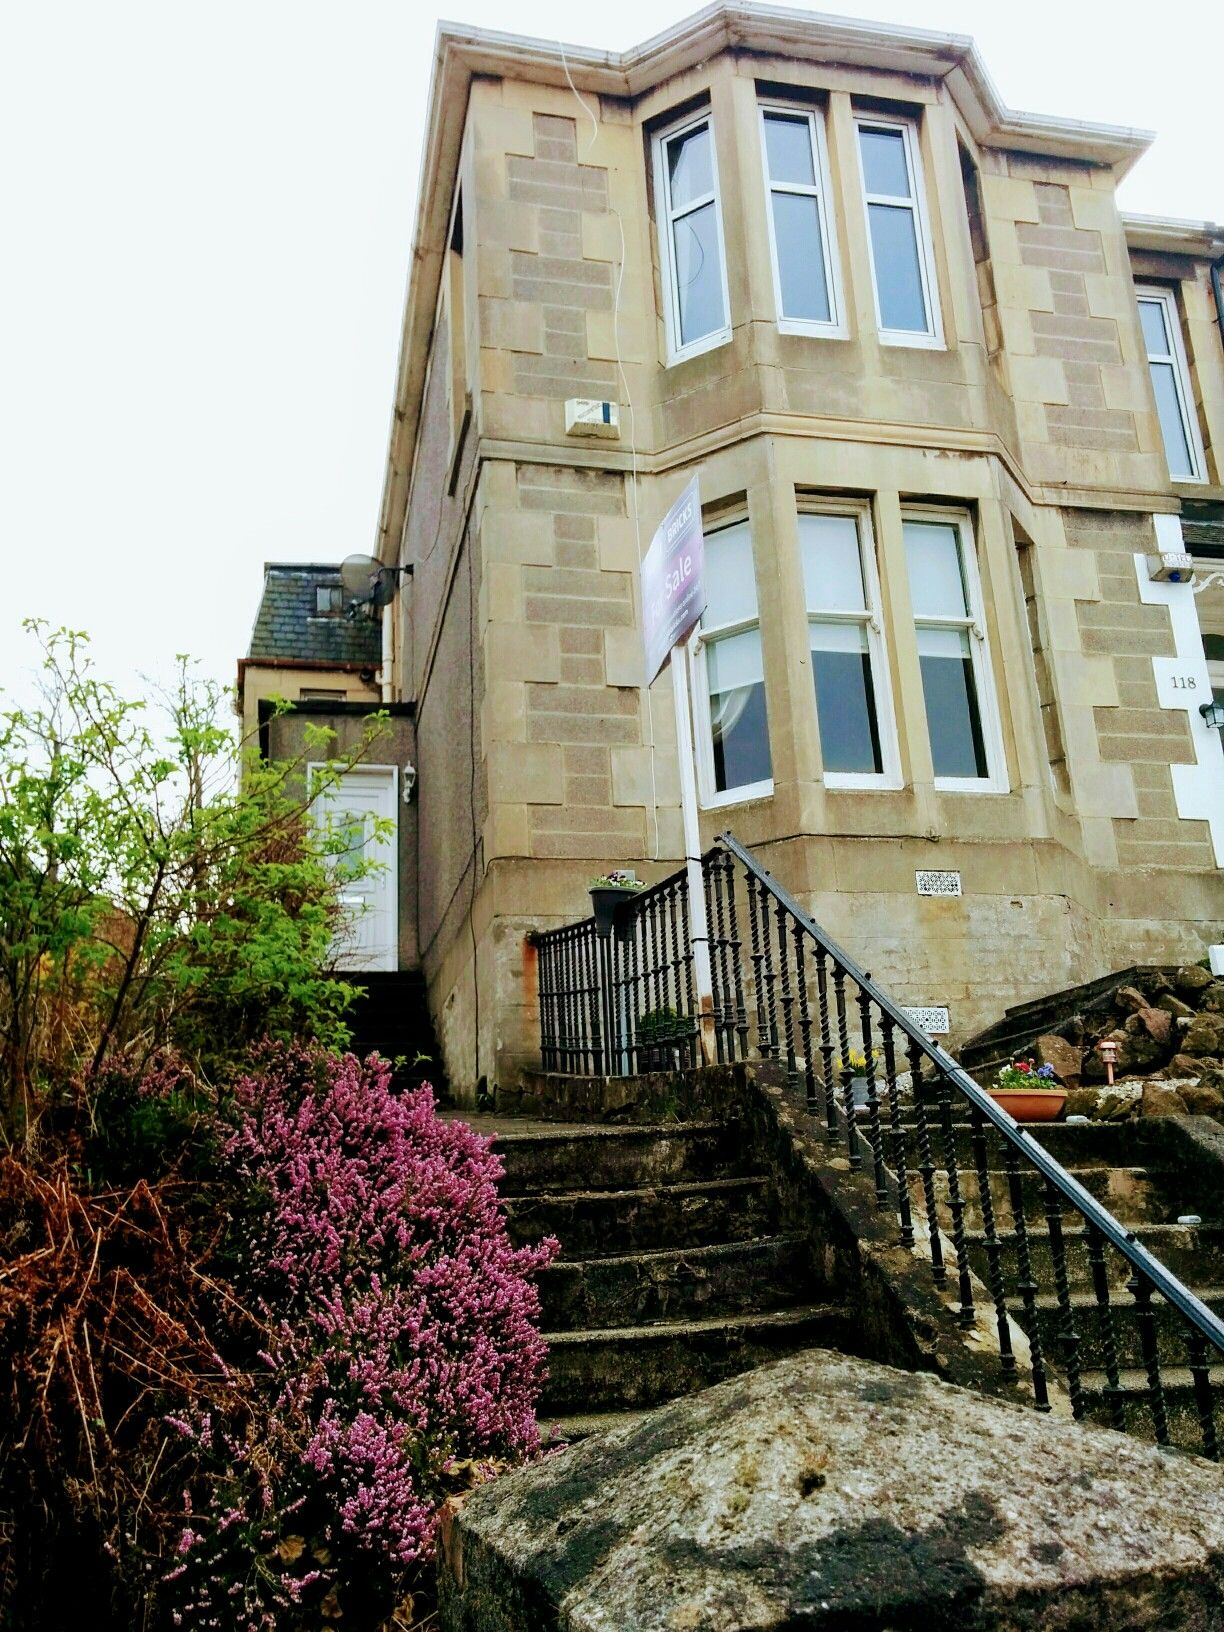 1 Bed Flat Glasgow 120 Rosalyn Ave G73 3ex Glasgow 1 Bed Apartment For Sale